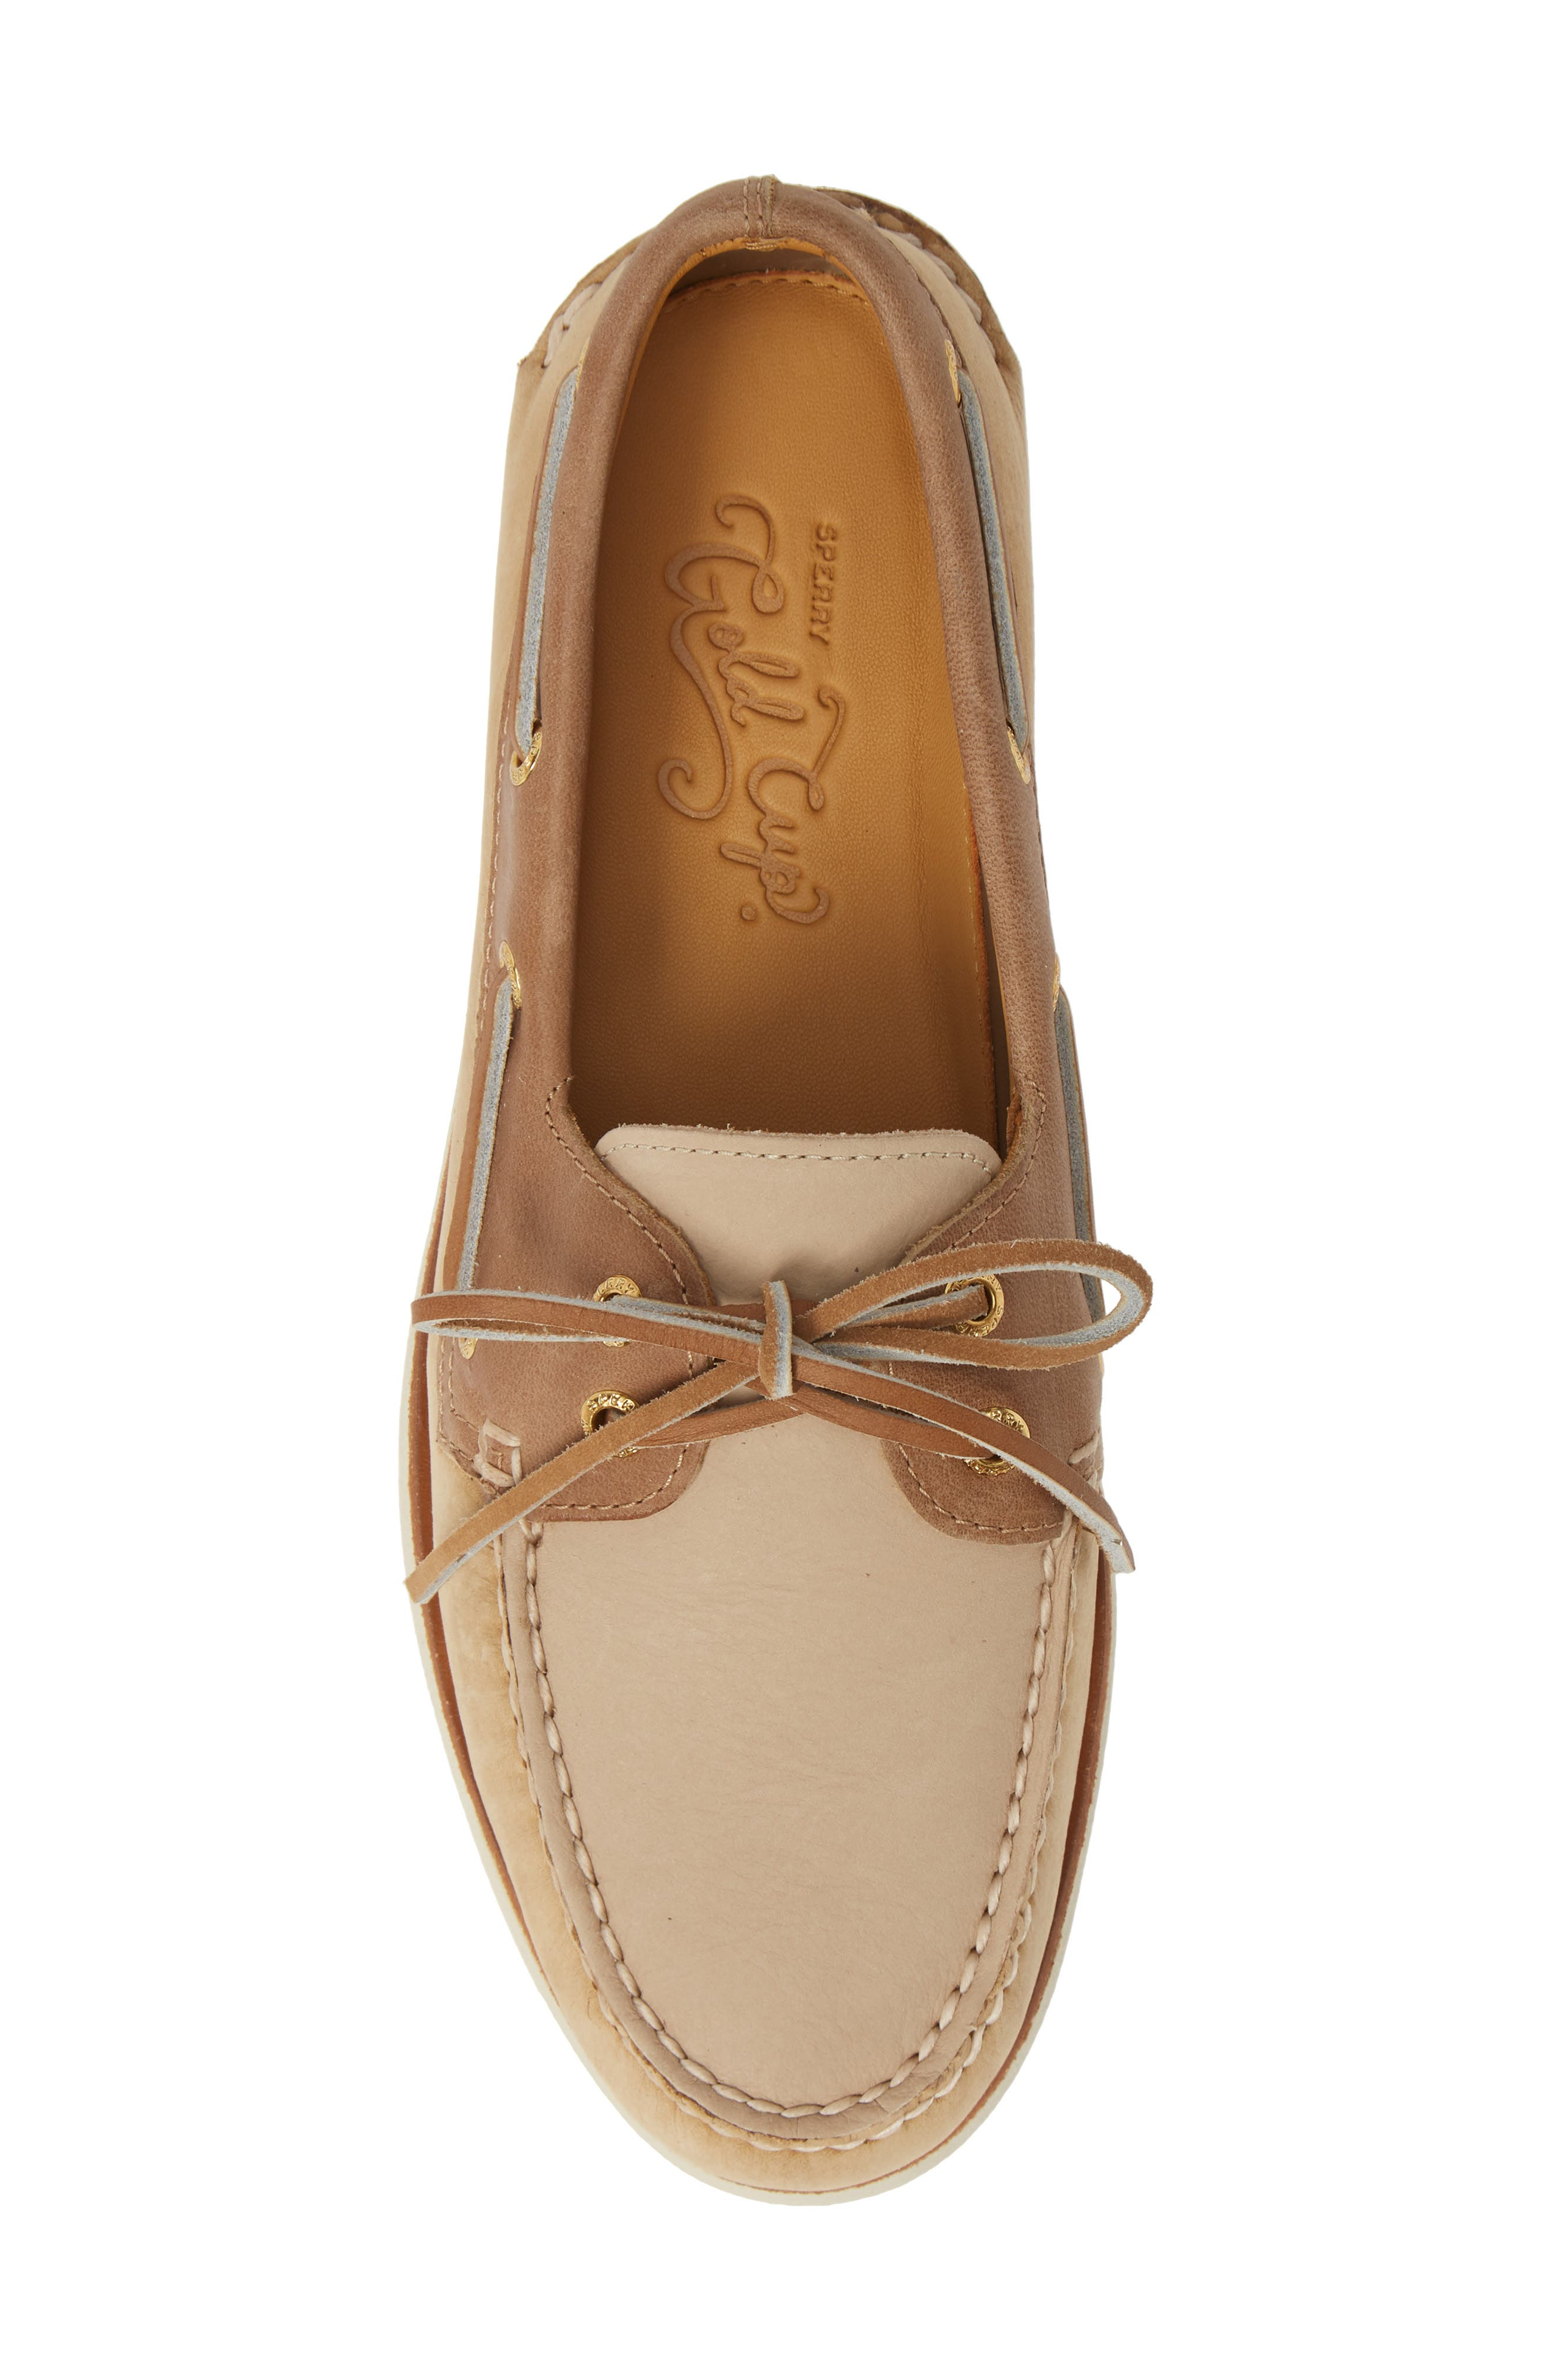 SPERRY, Gold Cup Authentic Original Boat Shoe, Alternate thumbnail 5, color, TAN/ BROWN/ CREAM LEATHER